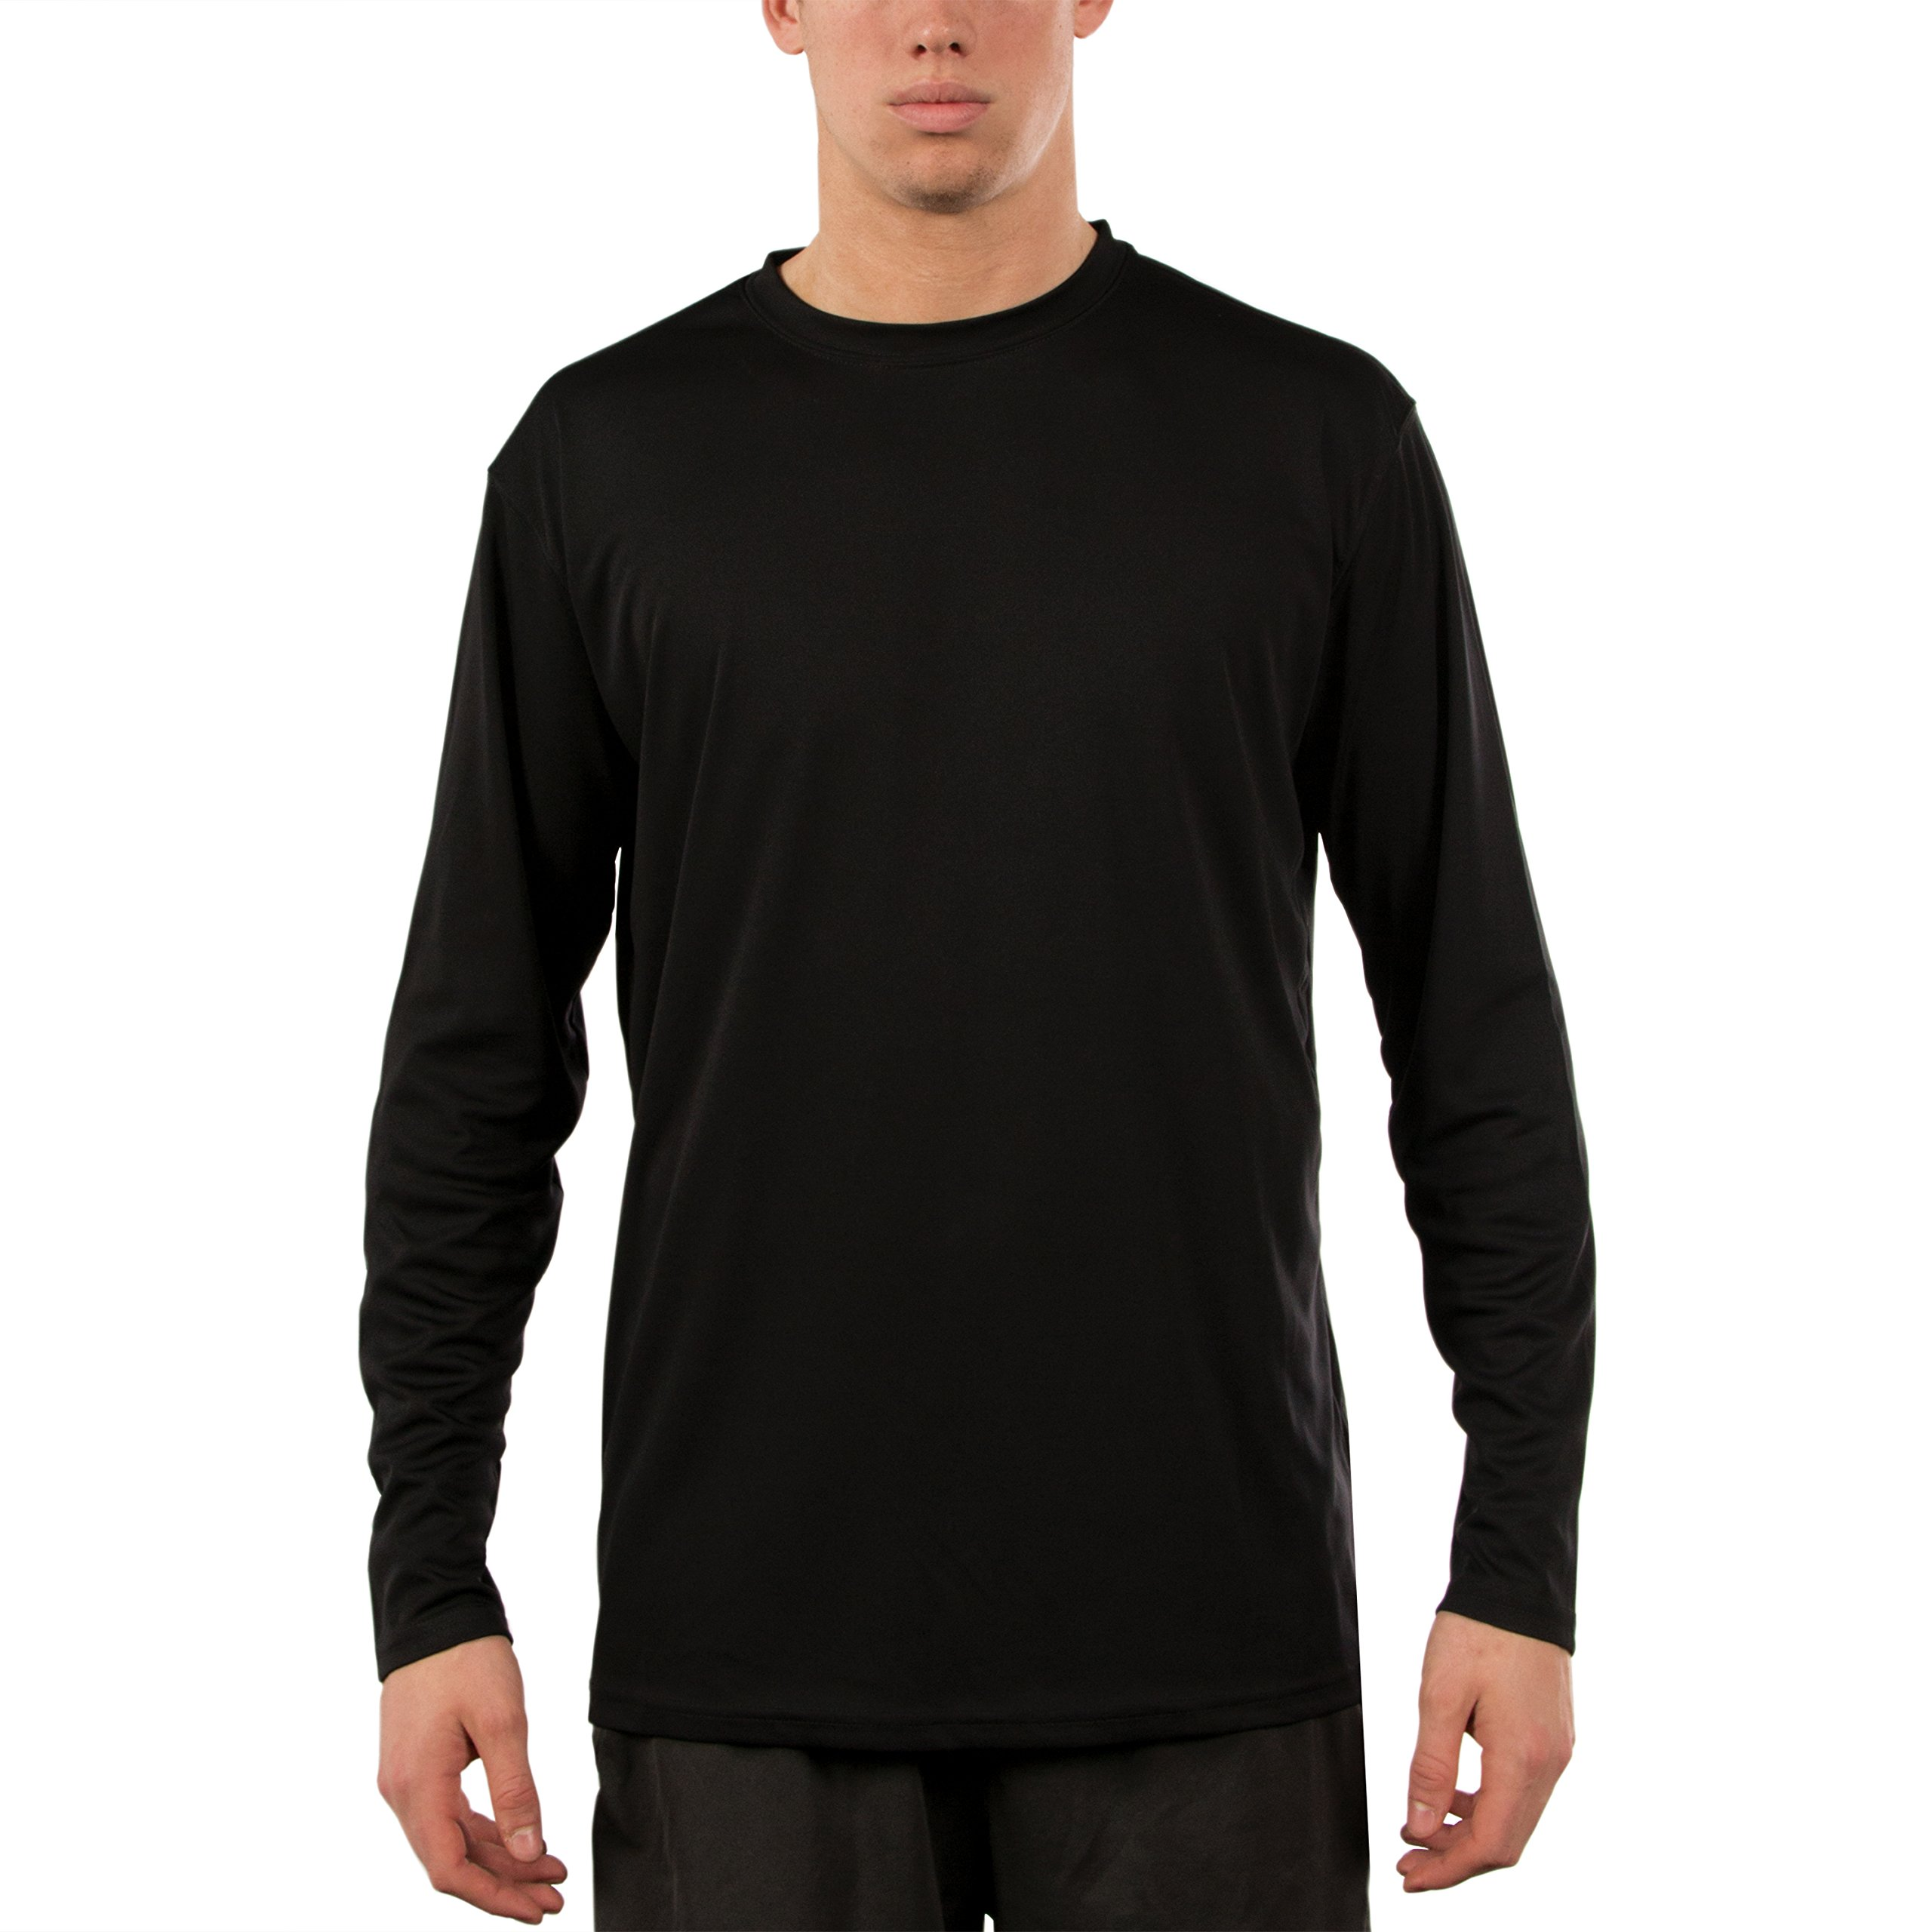 Vapor Apparel Men's UPF 50+ Sun Protection Performance Long Sleeve T-shirt X-Large Black